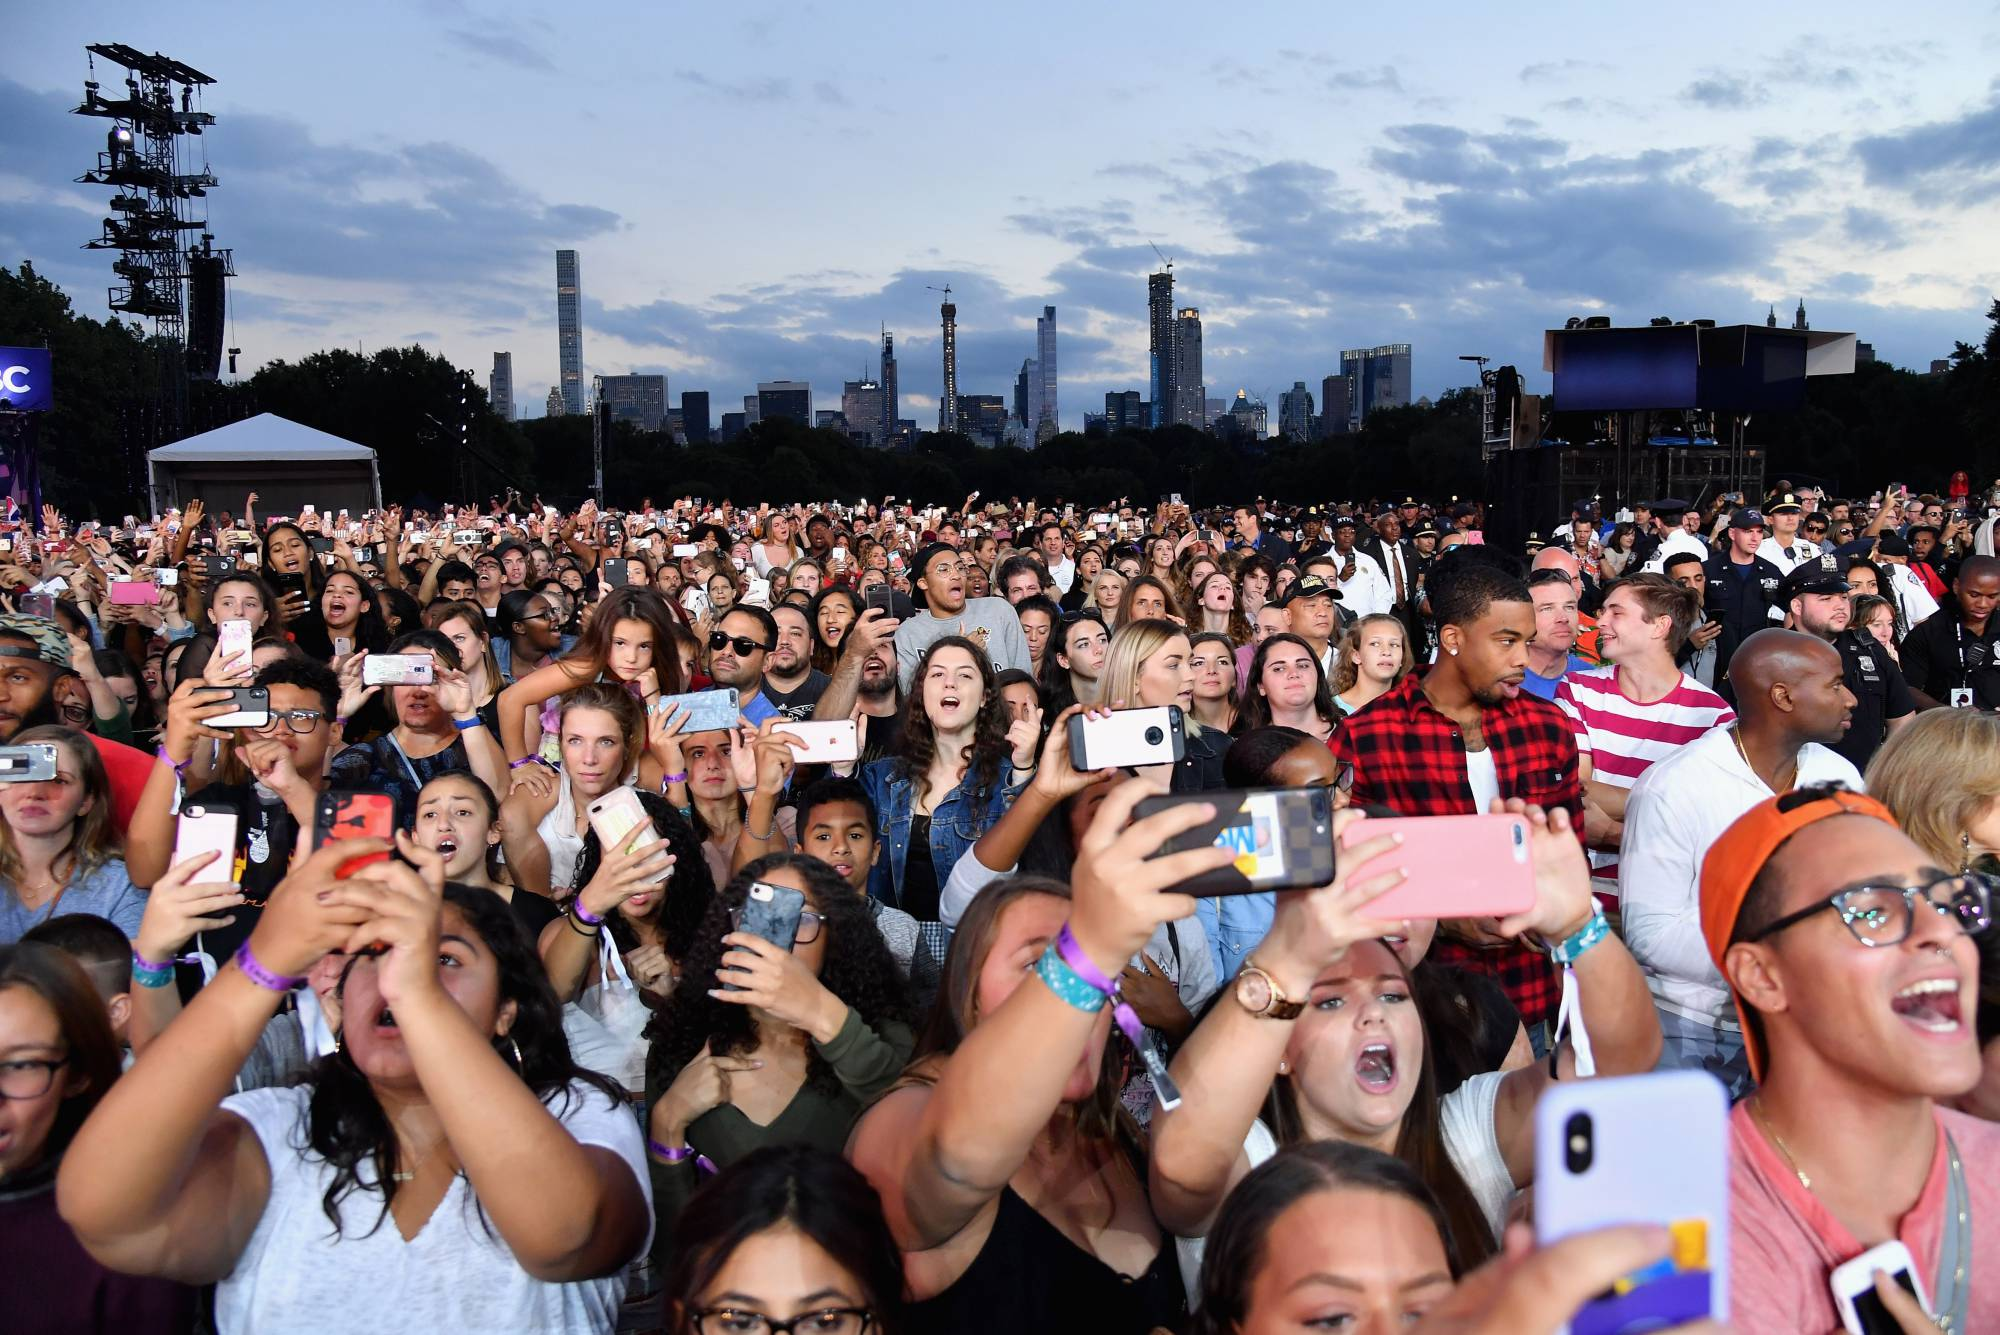 People use their mobile phones during a performance at the 2018 Global Citizen Festival